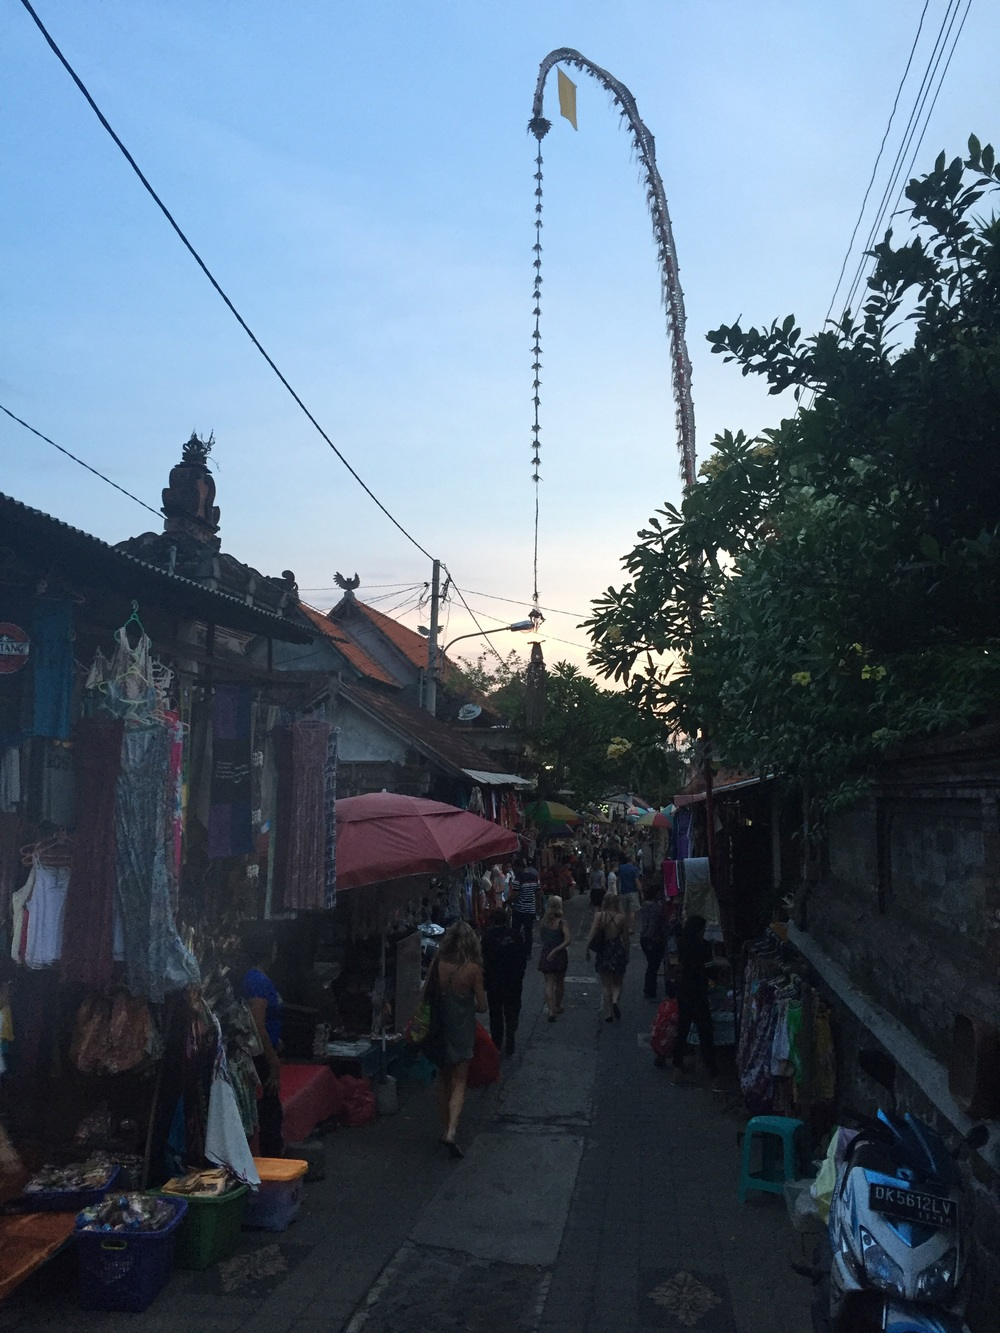 Ubud market (closes around 5pm so get there early)